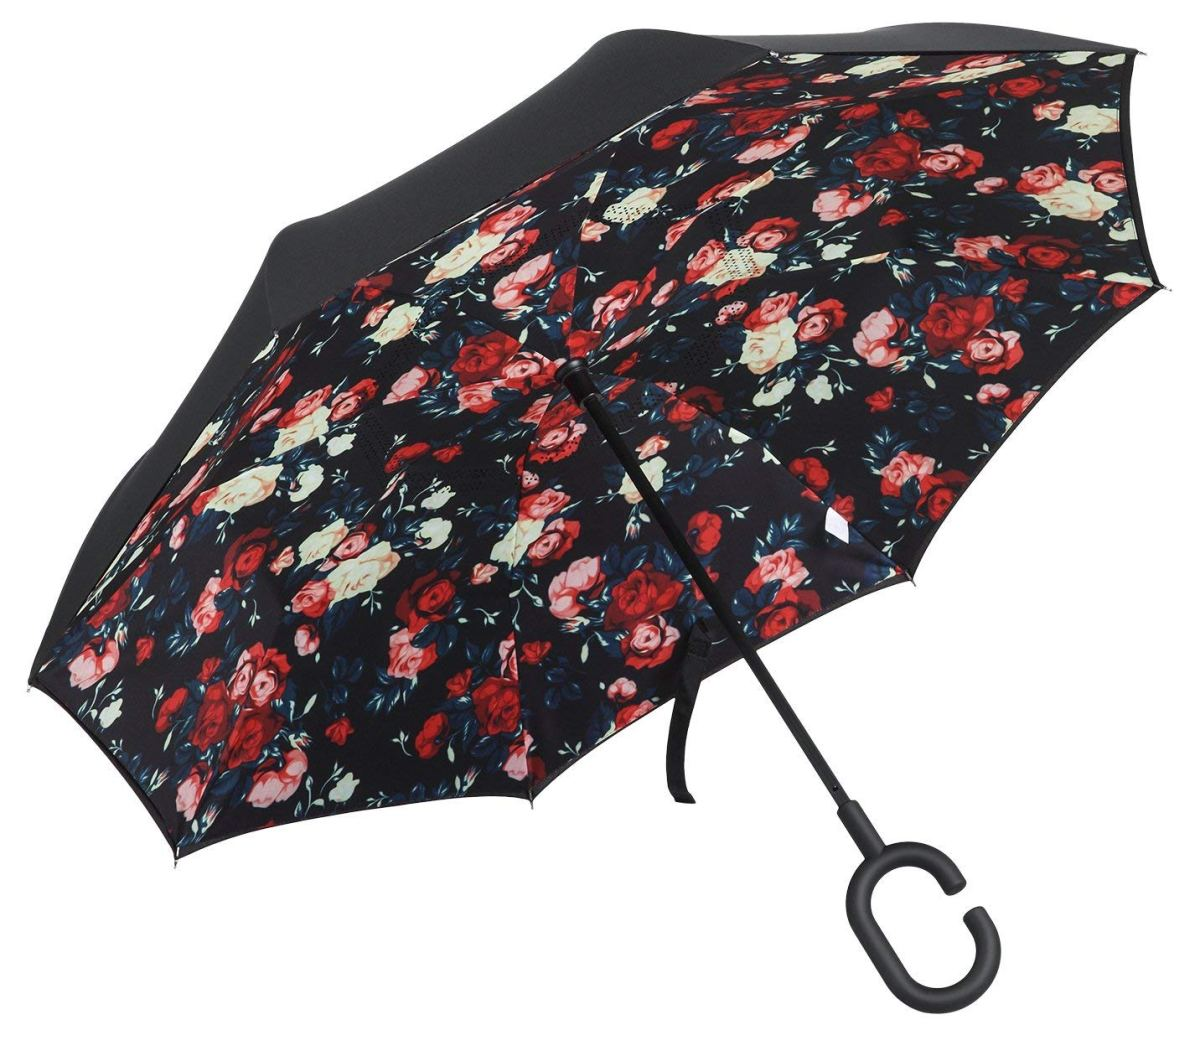 Amazon: Double Layer Inverted Umbrella, Windproof Reverse Umbrella for Outdoor UV Protection or for Car Use With Folding C-Shaped Hands-Free for $9.99 w.code (reg:$28.99)